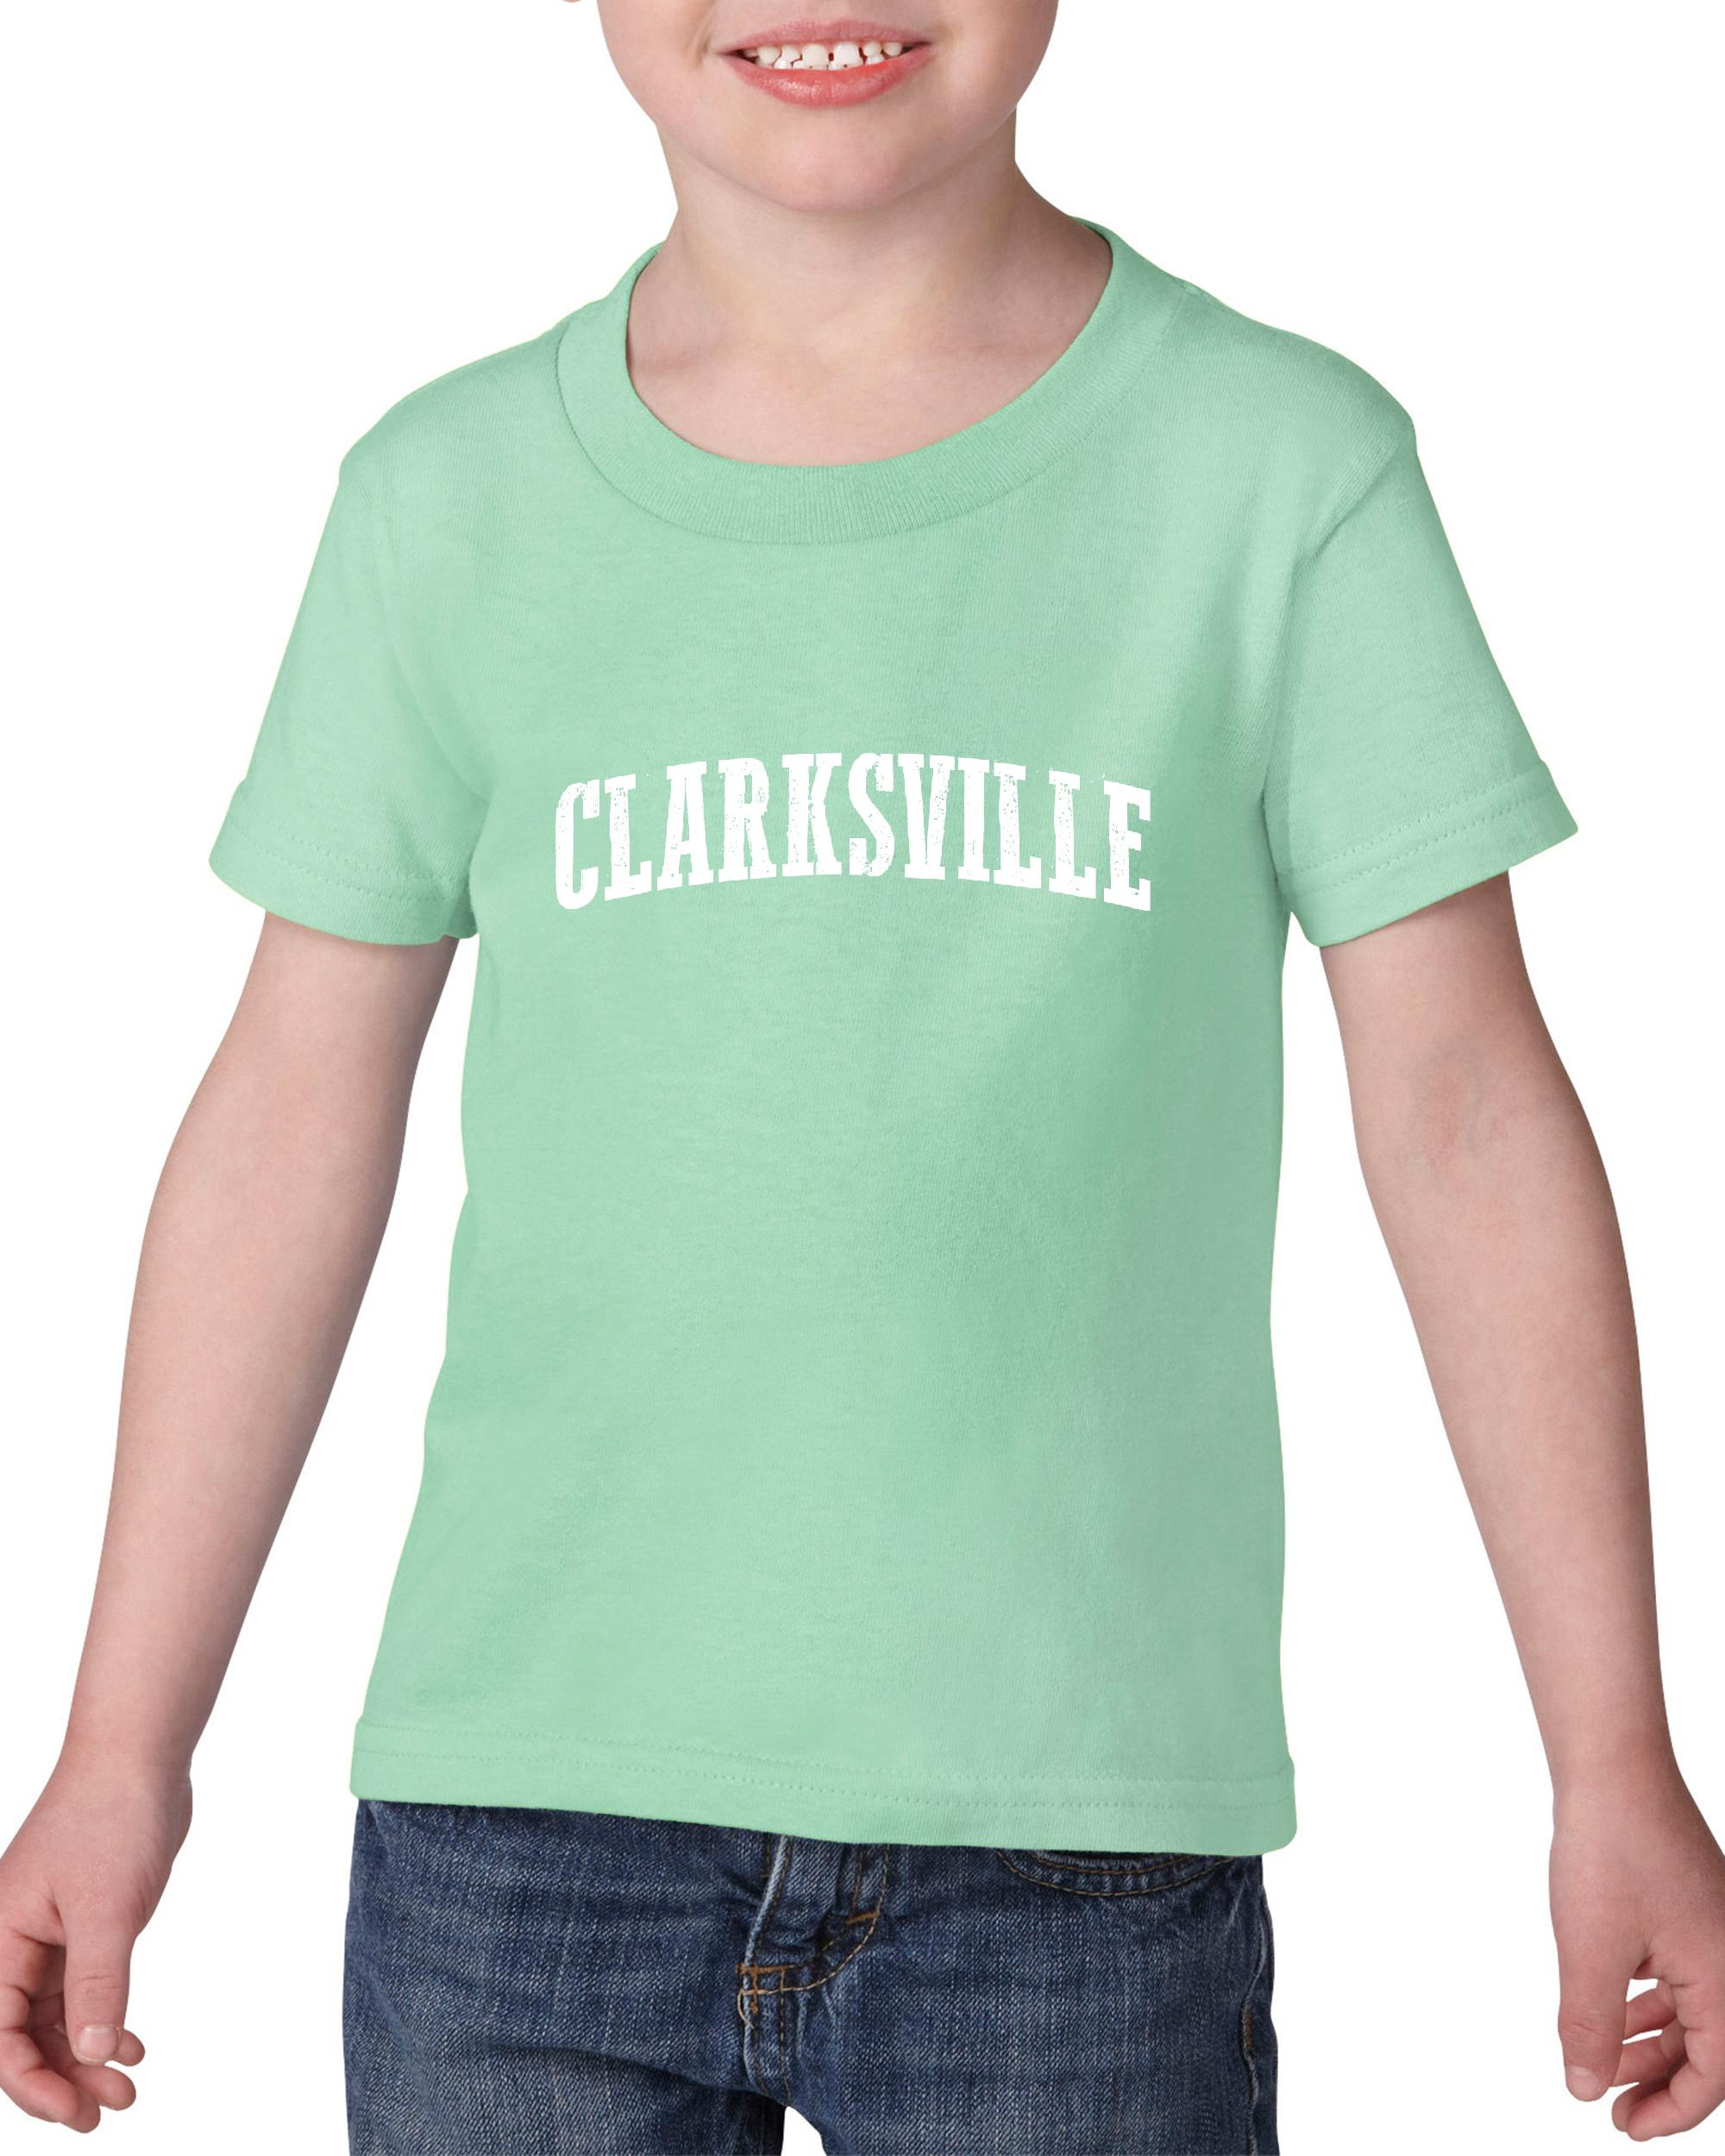 Artix Clarksville TN Tennessee Flag Nashville Map Tigers Home Tennessee State University Heavy Cotton Toddler Kids T-Shirt Tee Clothing